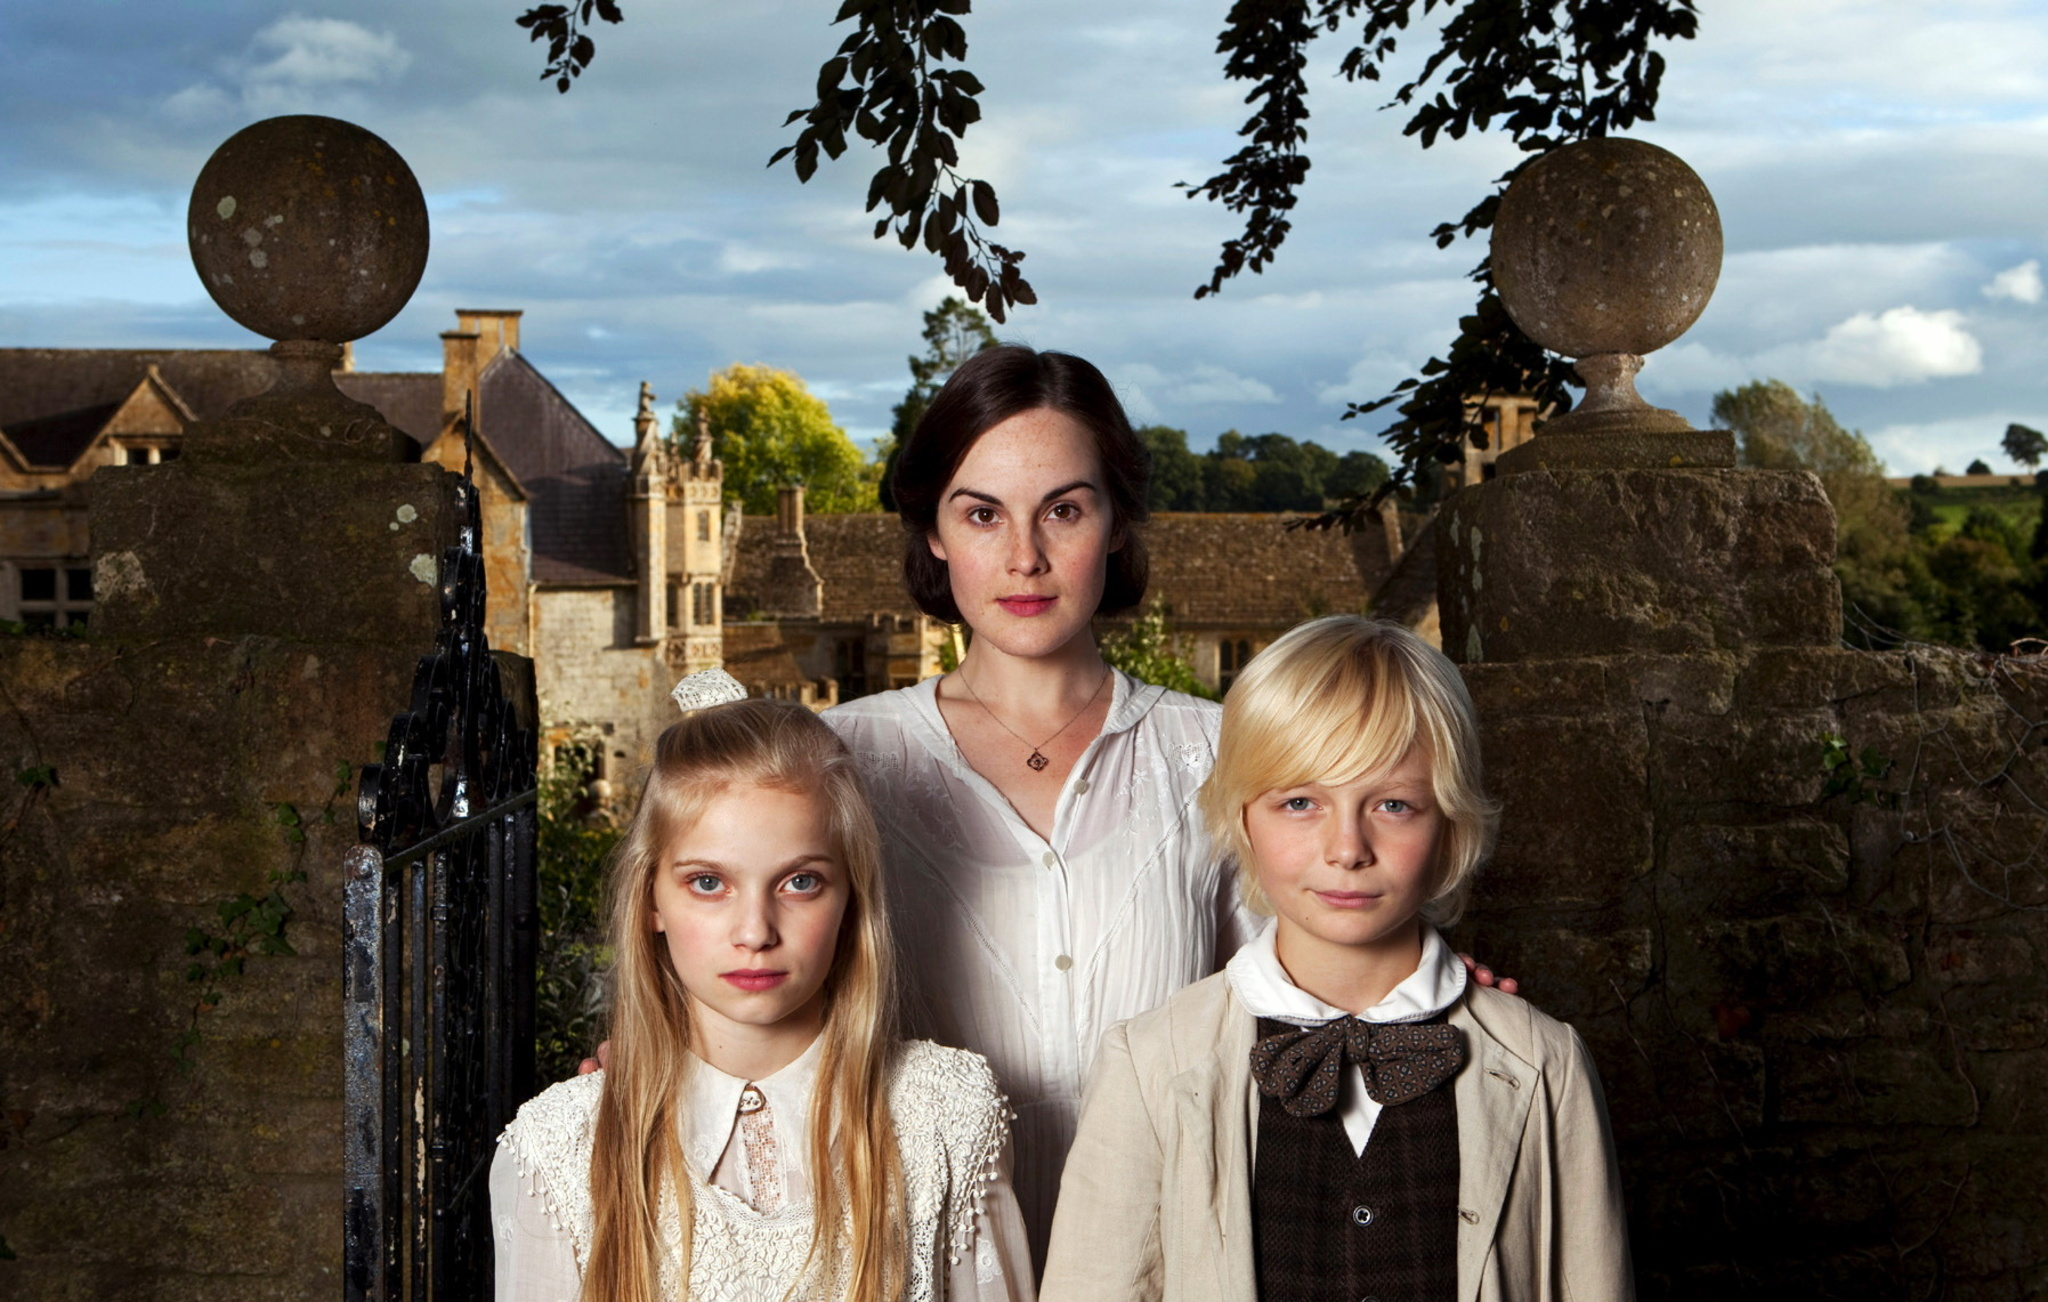 Ann (Michelle Dockery) flanked by the two children Flora (Eve Bayer) and Miles (Josef Lindsay) in The Turn of the Screw (2009)